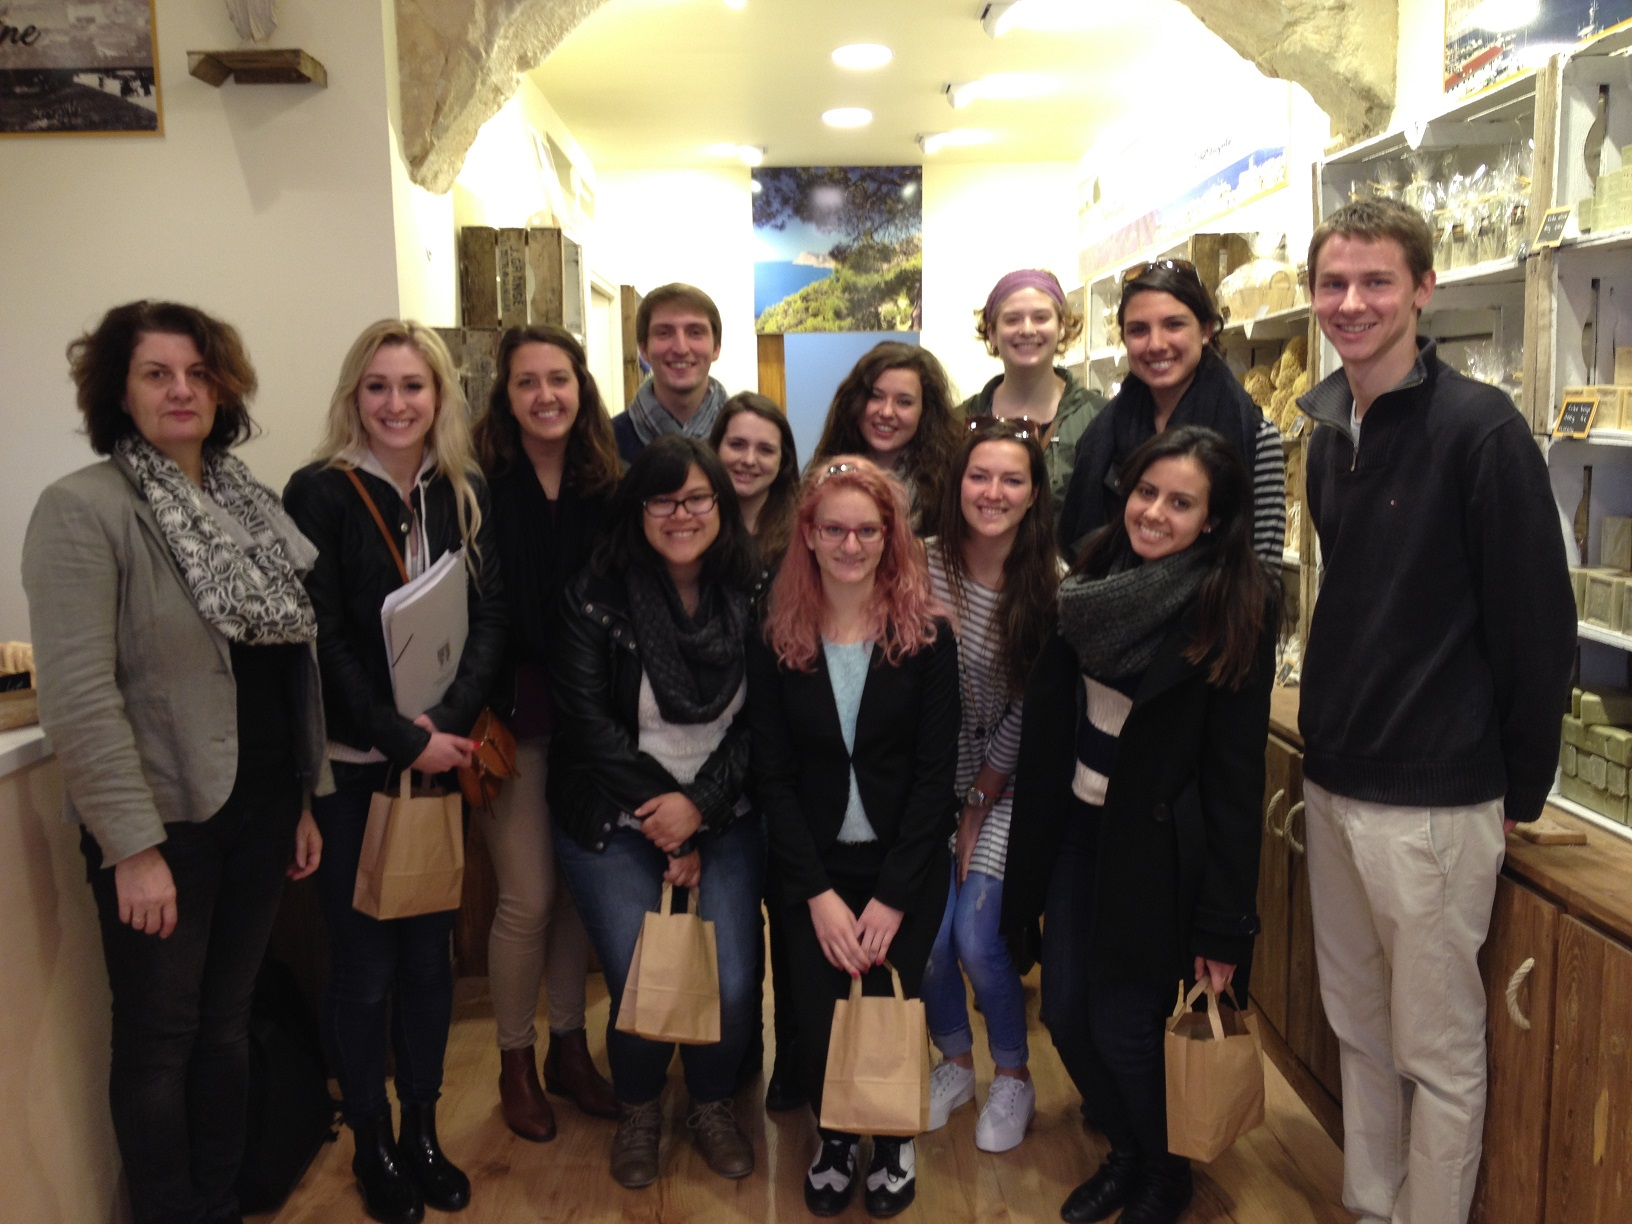 Students visit an internship placement with Professor Pascale Schaaf